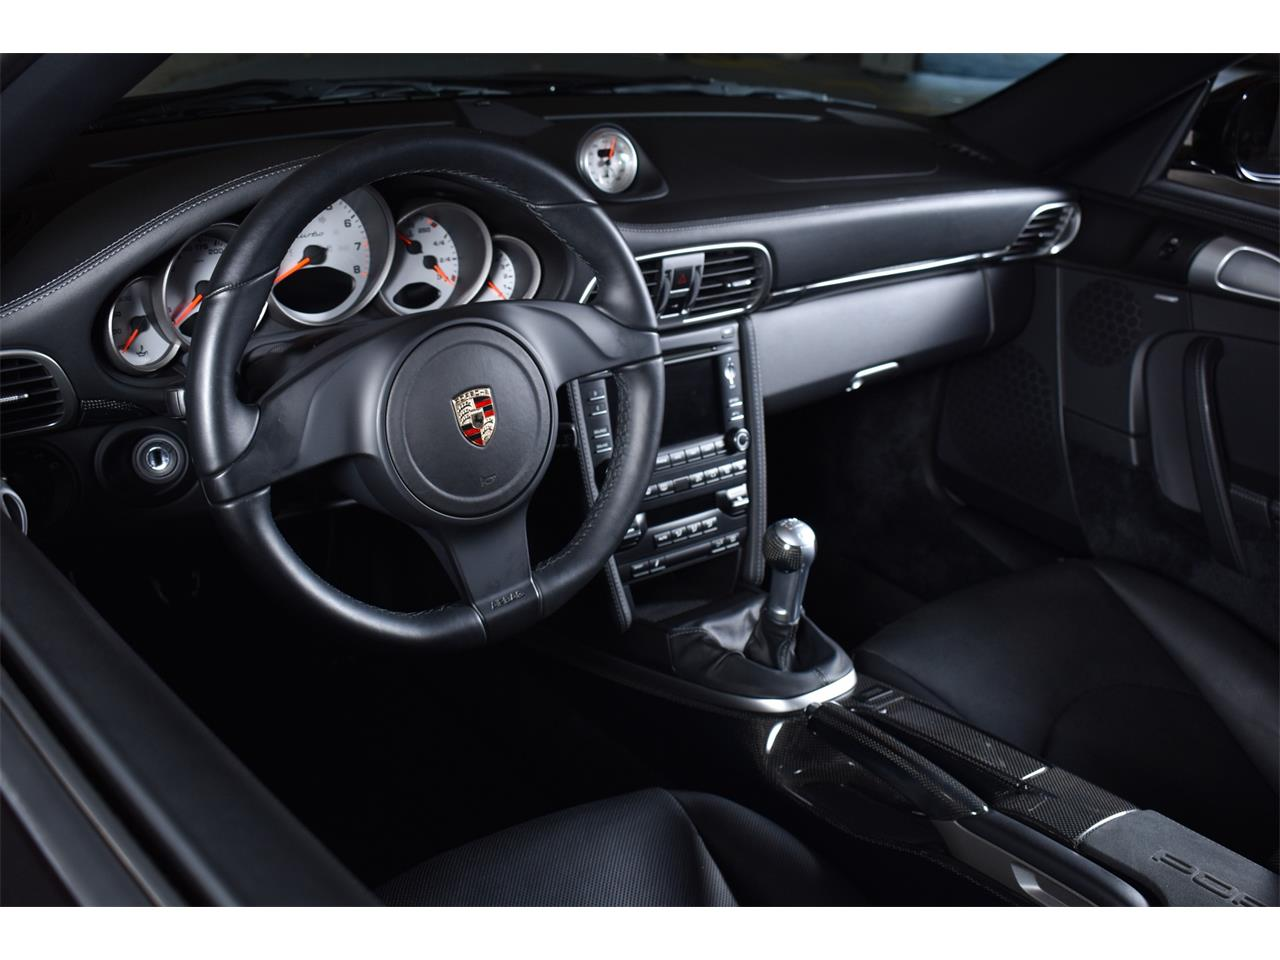 2011 Porsche 911 for sale in Valley Stream, NY – photo 18